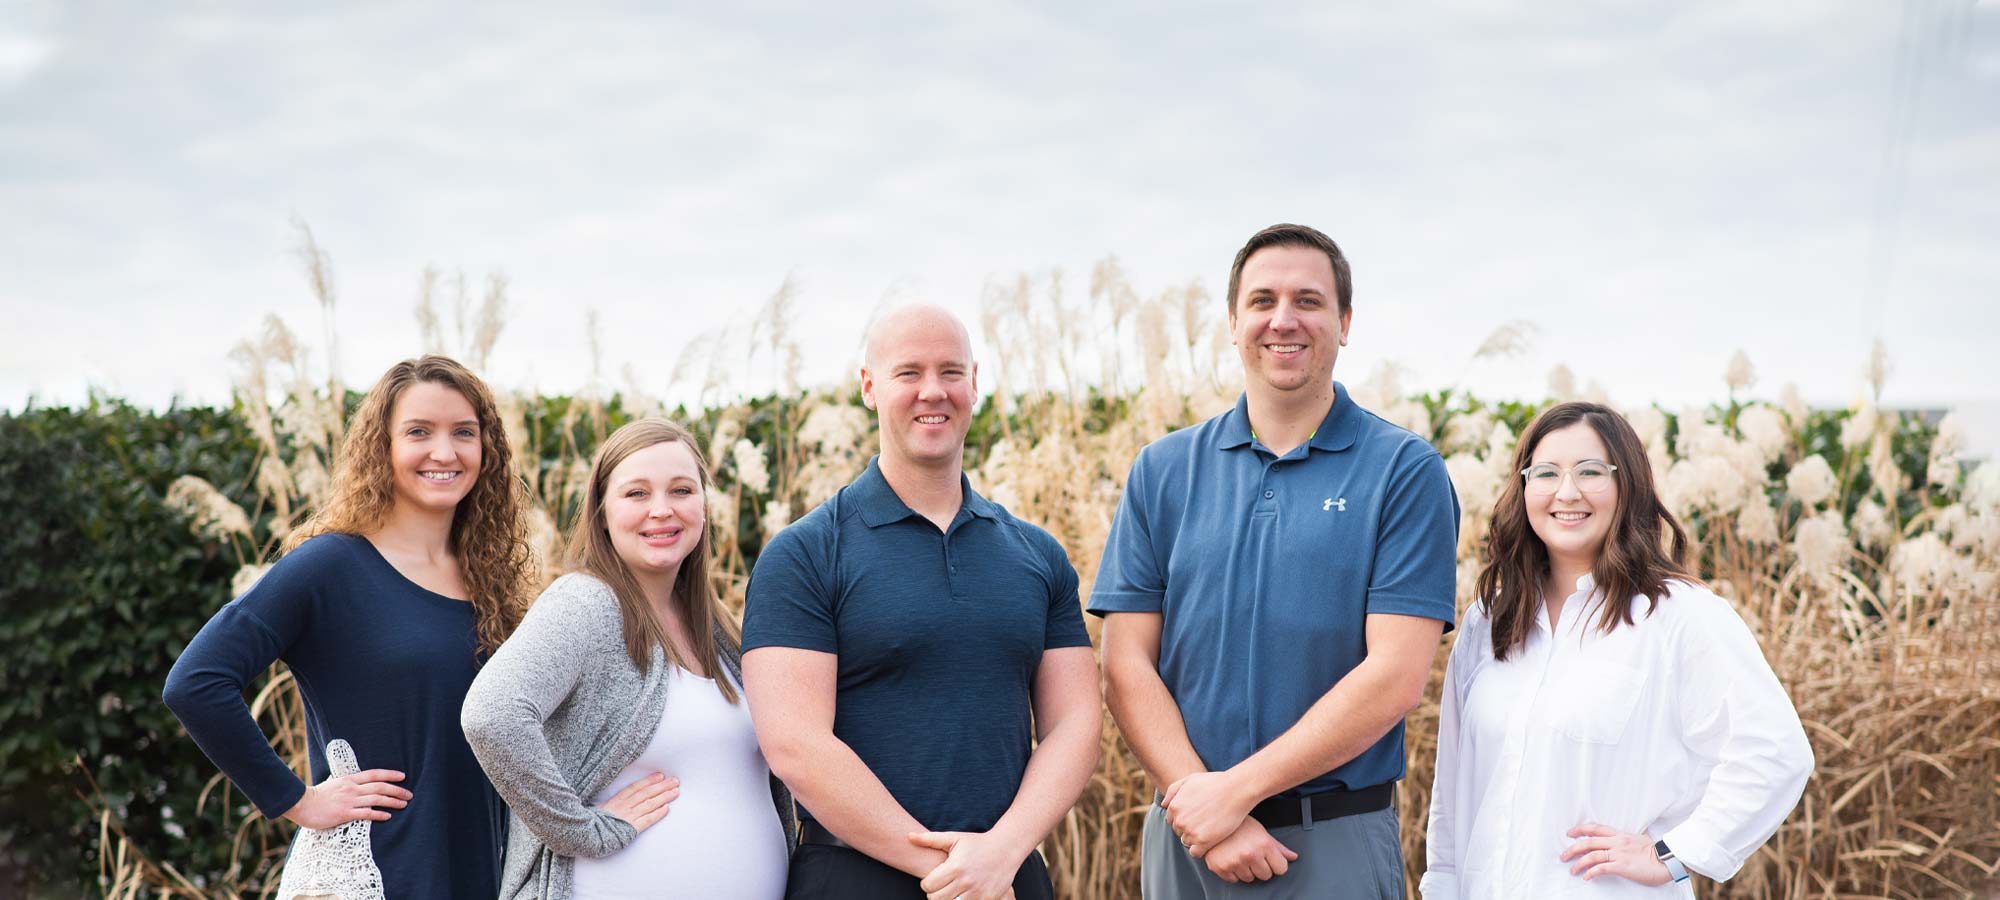 Chiropractor Clemmons NC Dr. Jason Barker and Team